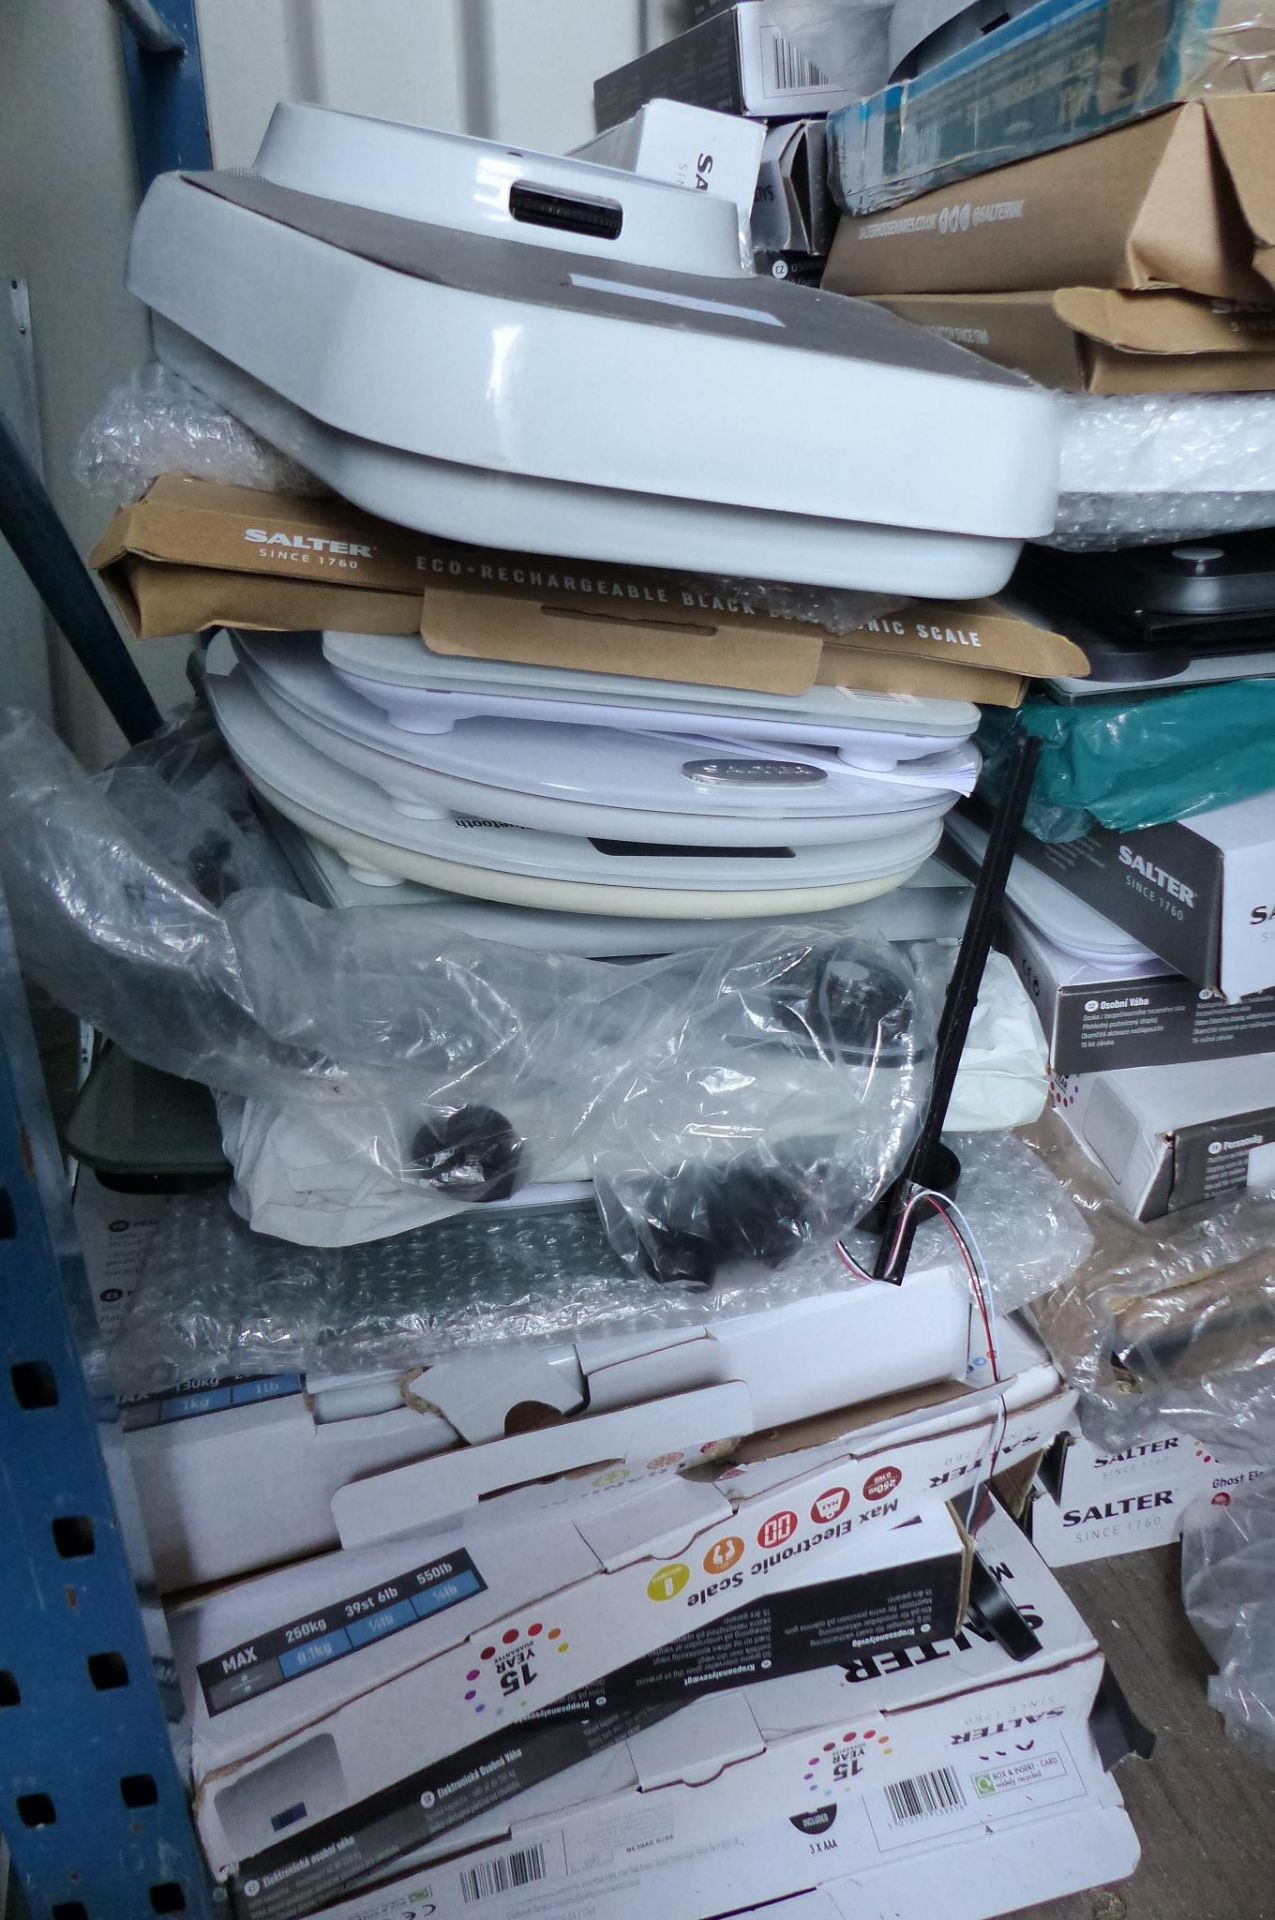 Large Job Lot Of bathroom Scales to include Salter & John Lewis - Image 3 of 3